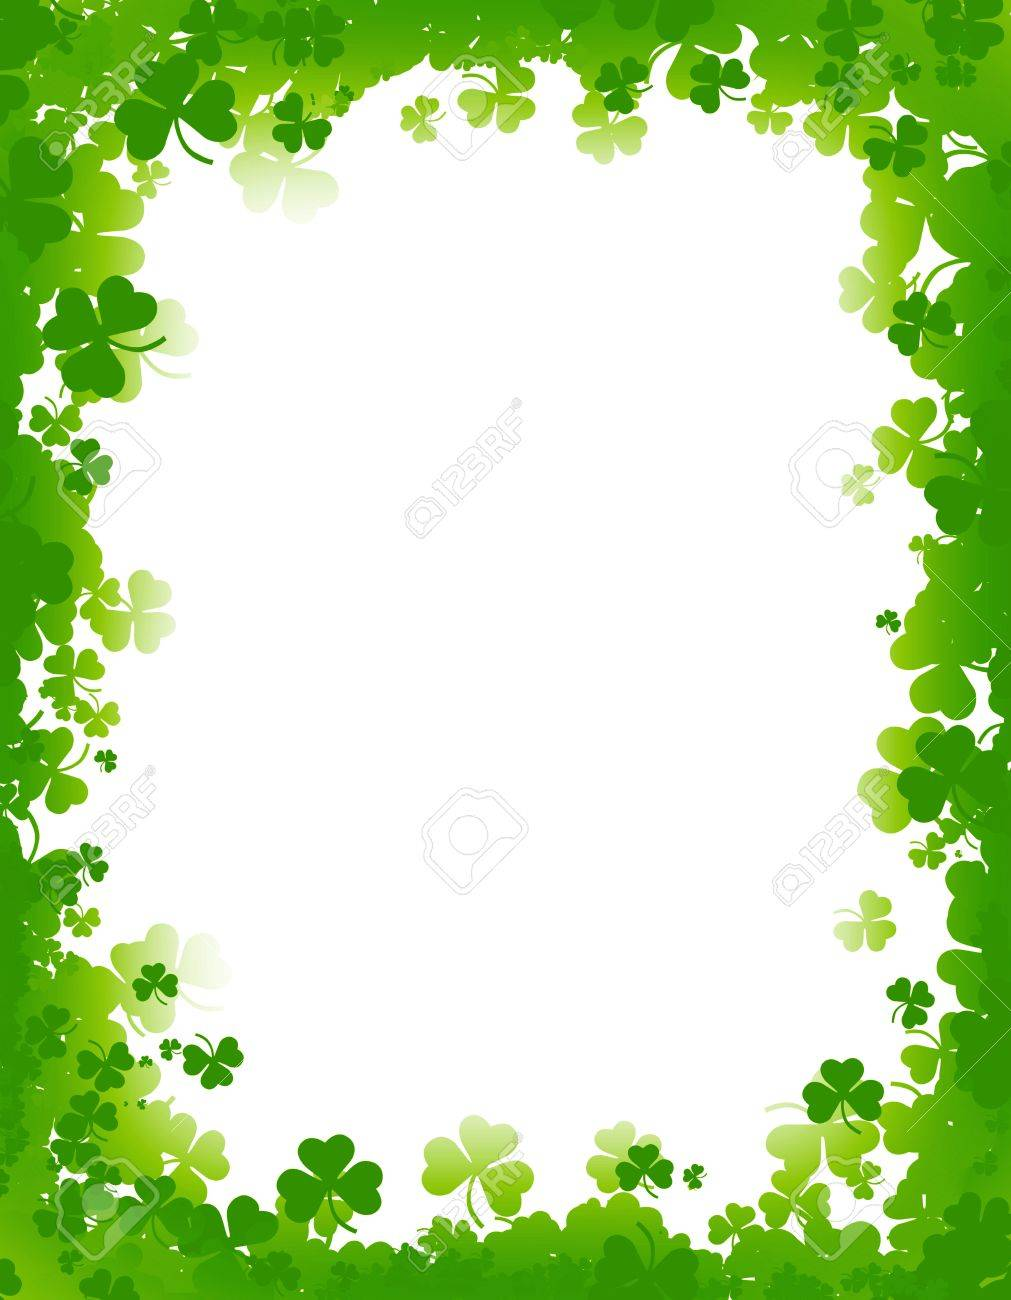 Free St Patricks Day Clipart Borders